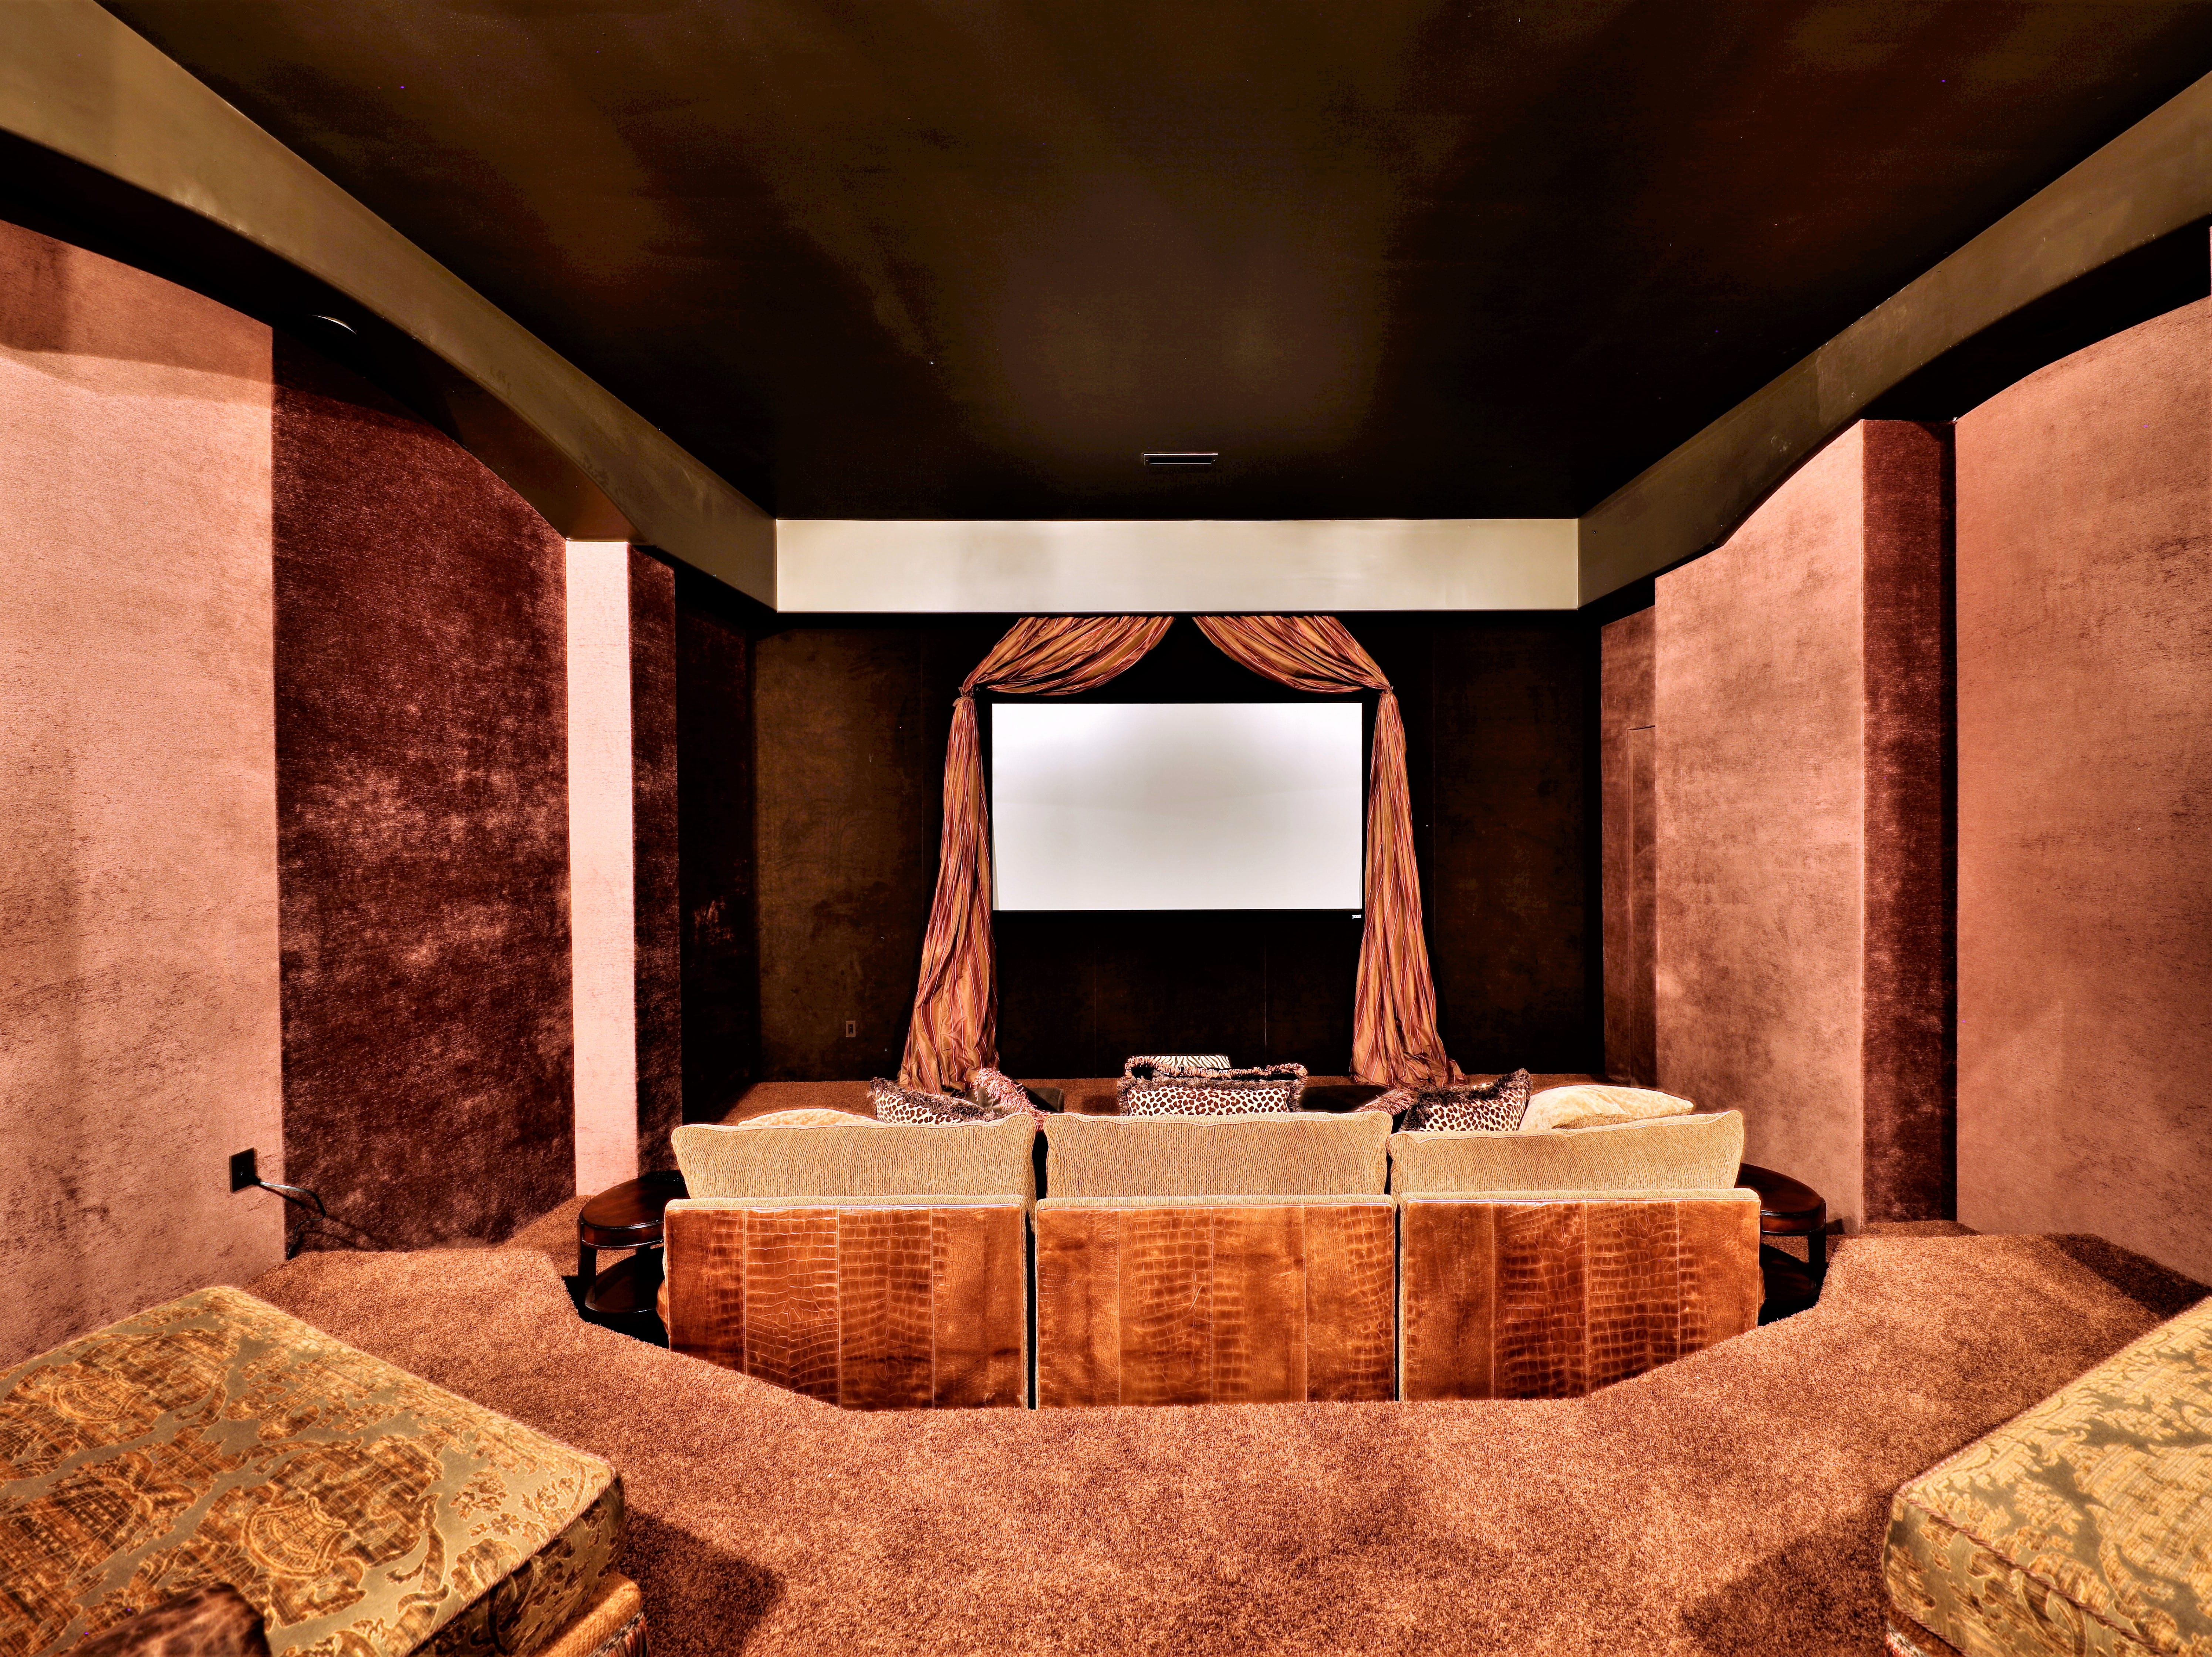 The basement also includes a home theater, with a stocked snack bar nearby.